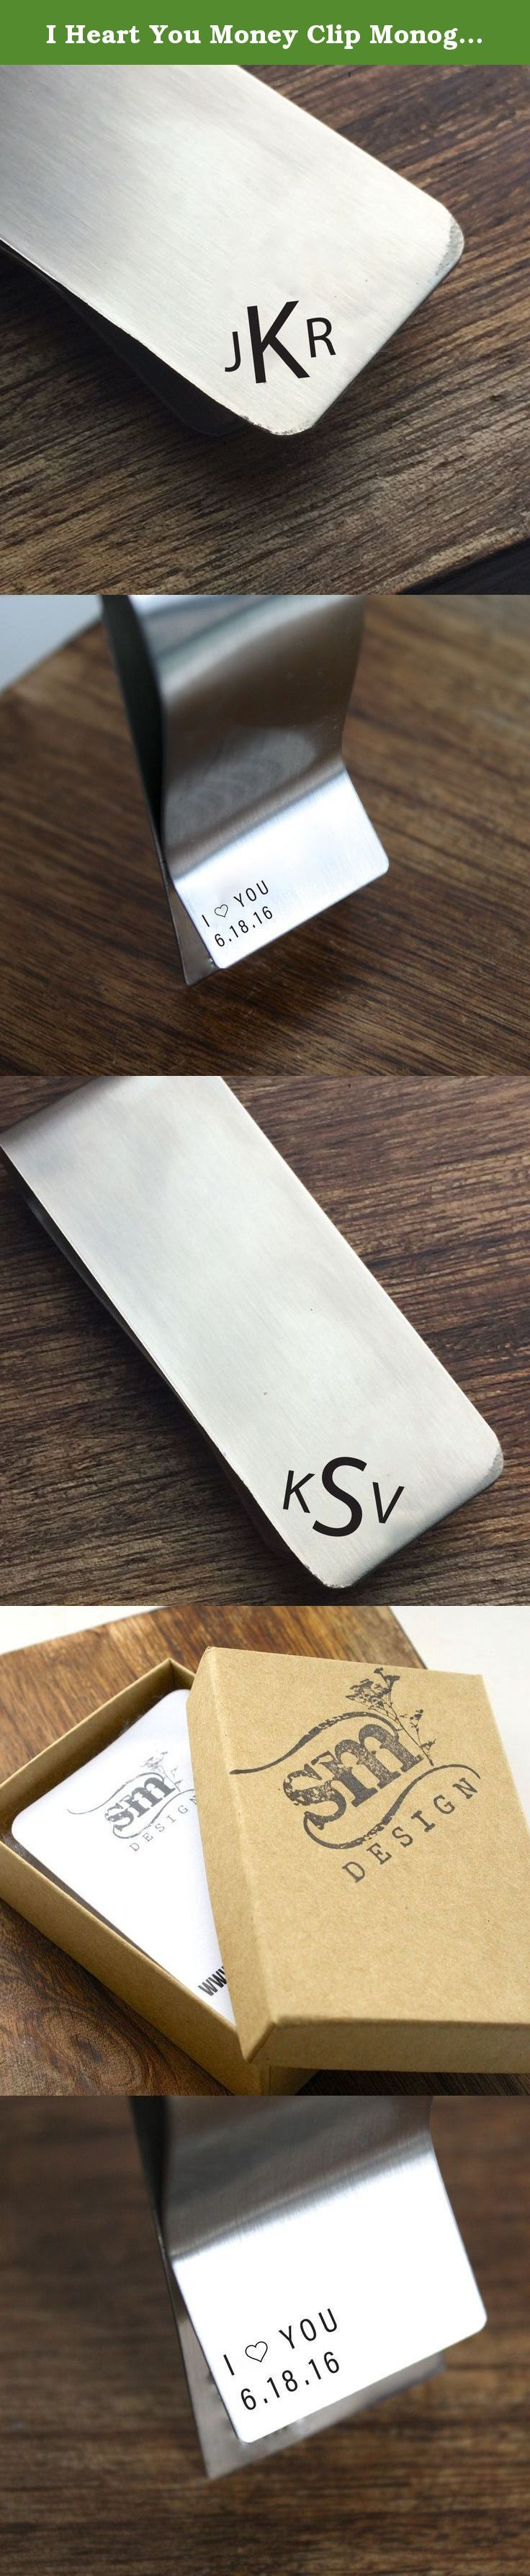 """I Heart You Money Clip Monogram Money Clip Personalized Mens Gift Money Clip Gift Mens Money Clip I Love You Gift Boyfriend Gift Valentines. The perfect gif for him!! This stainless steel money clip has a personalized monogram on the front and """"I Love You"""" and a personalized date on the back."""